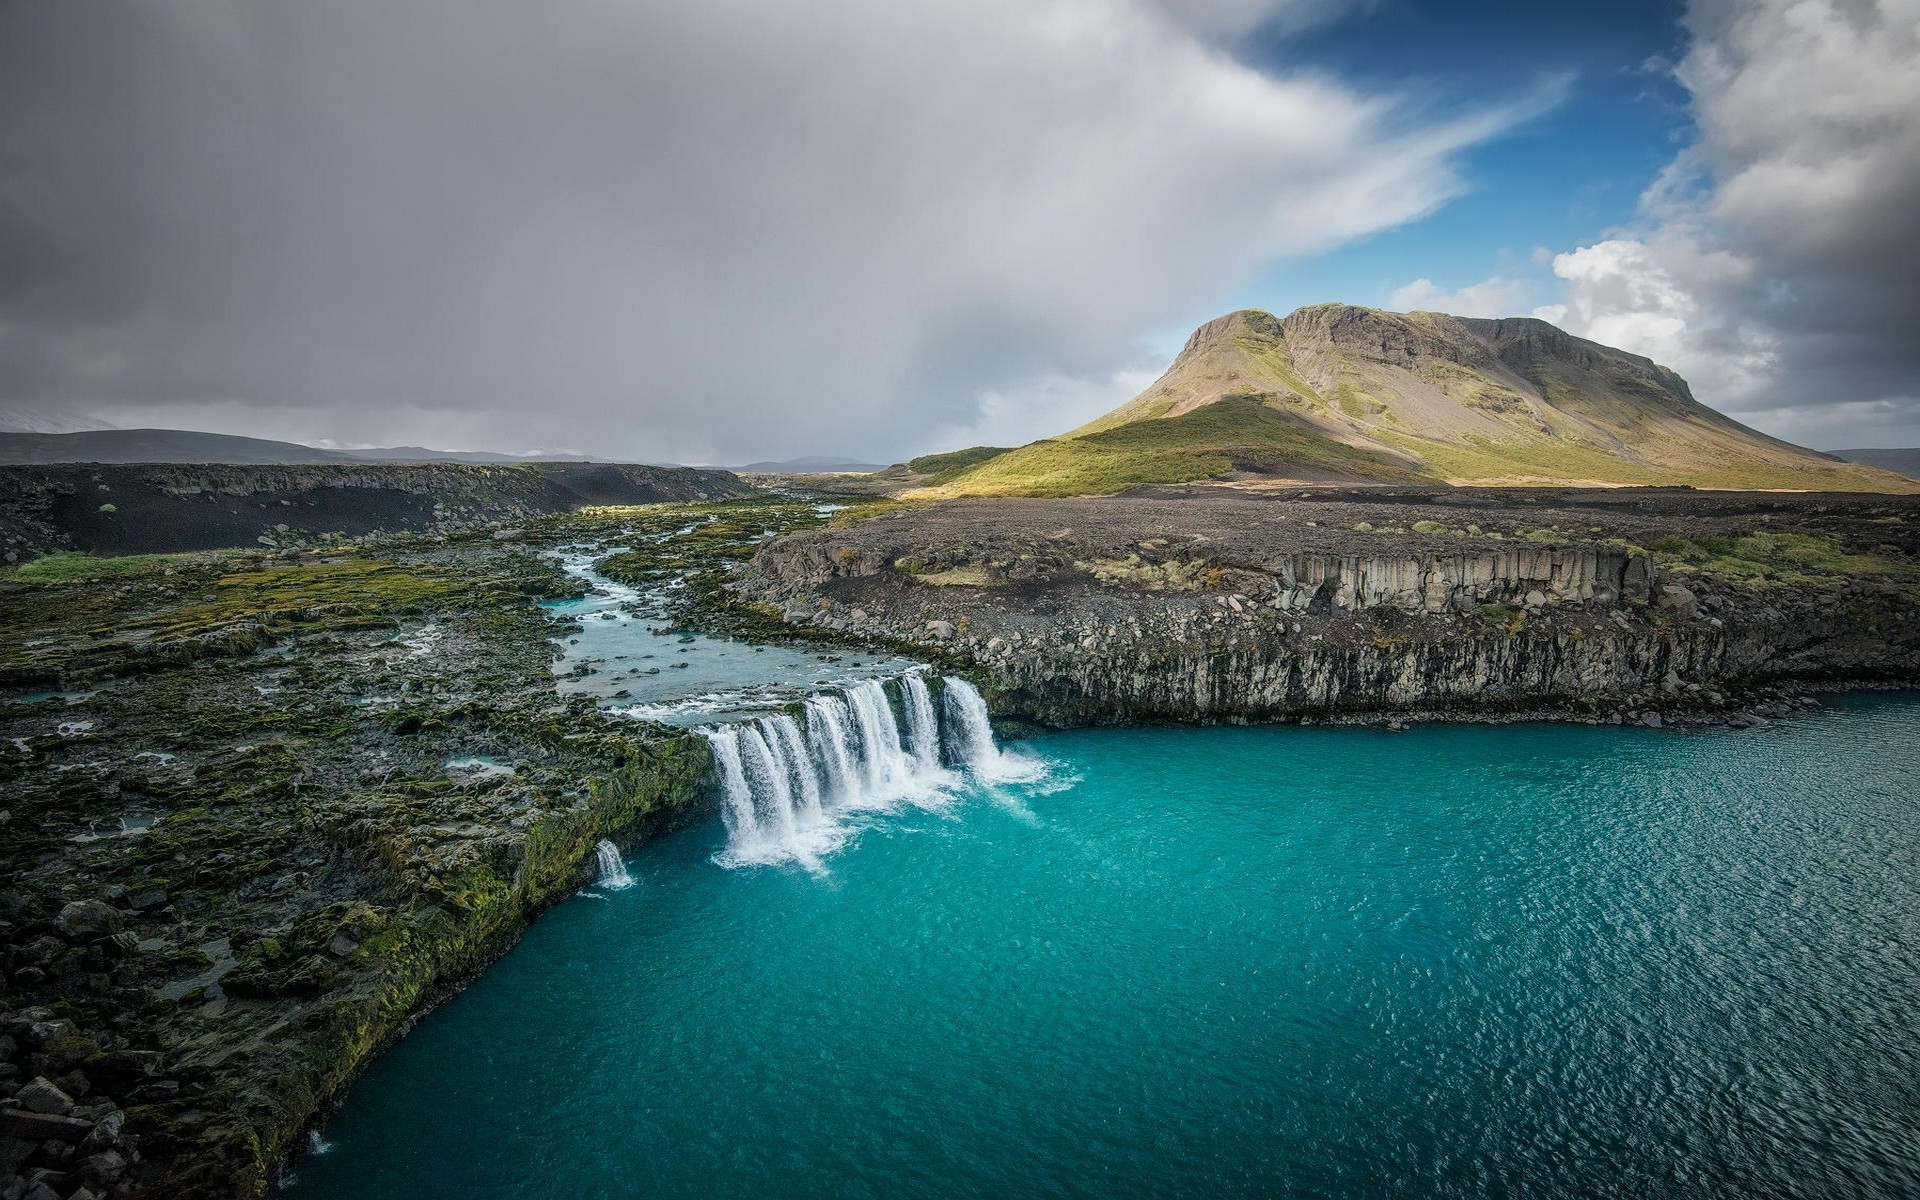 Beautiful Water Fall Scenery Wallpapers Landscape Nature Waterfall Iceland River Mountain